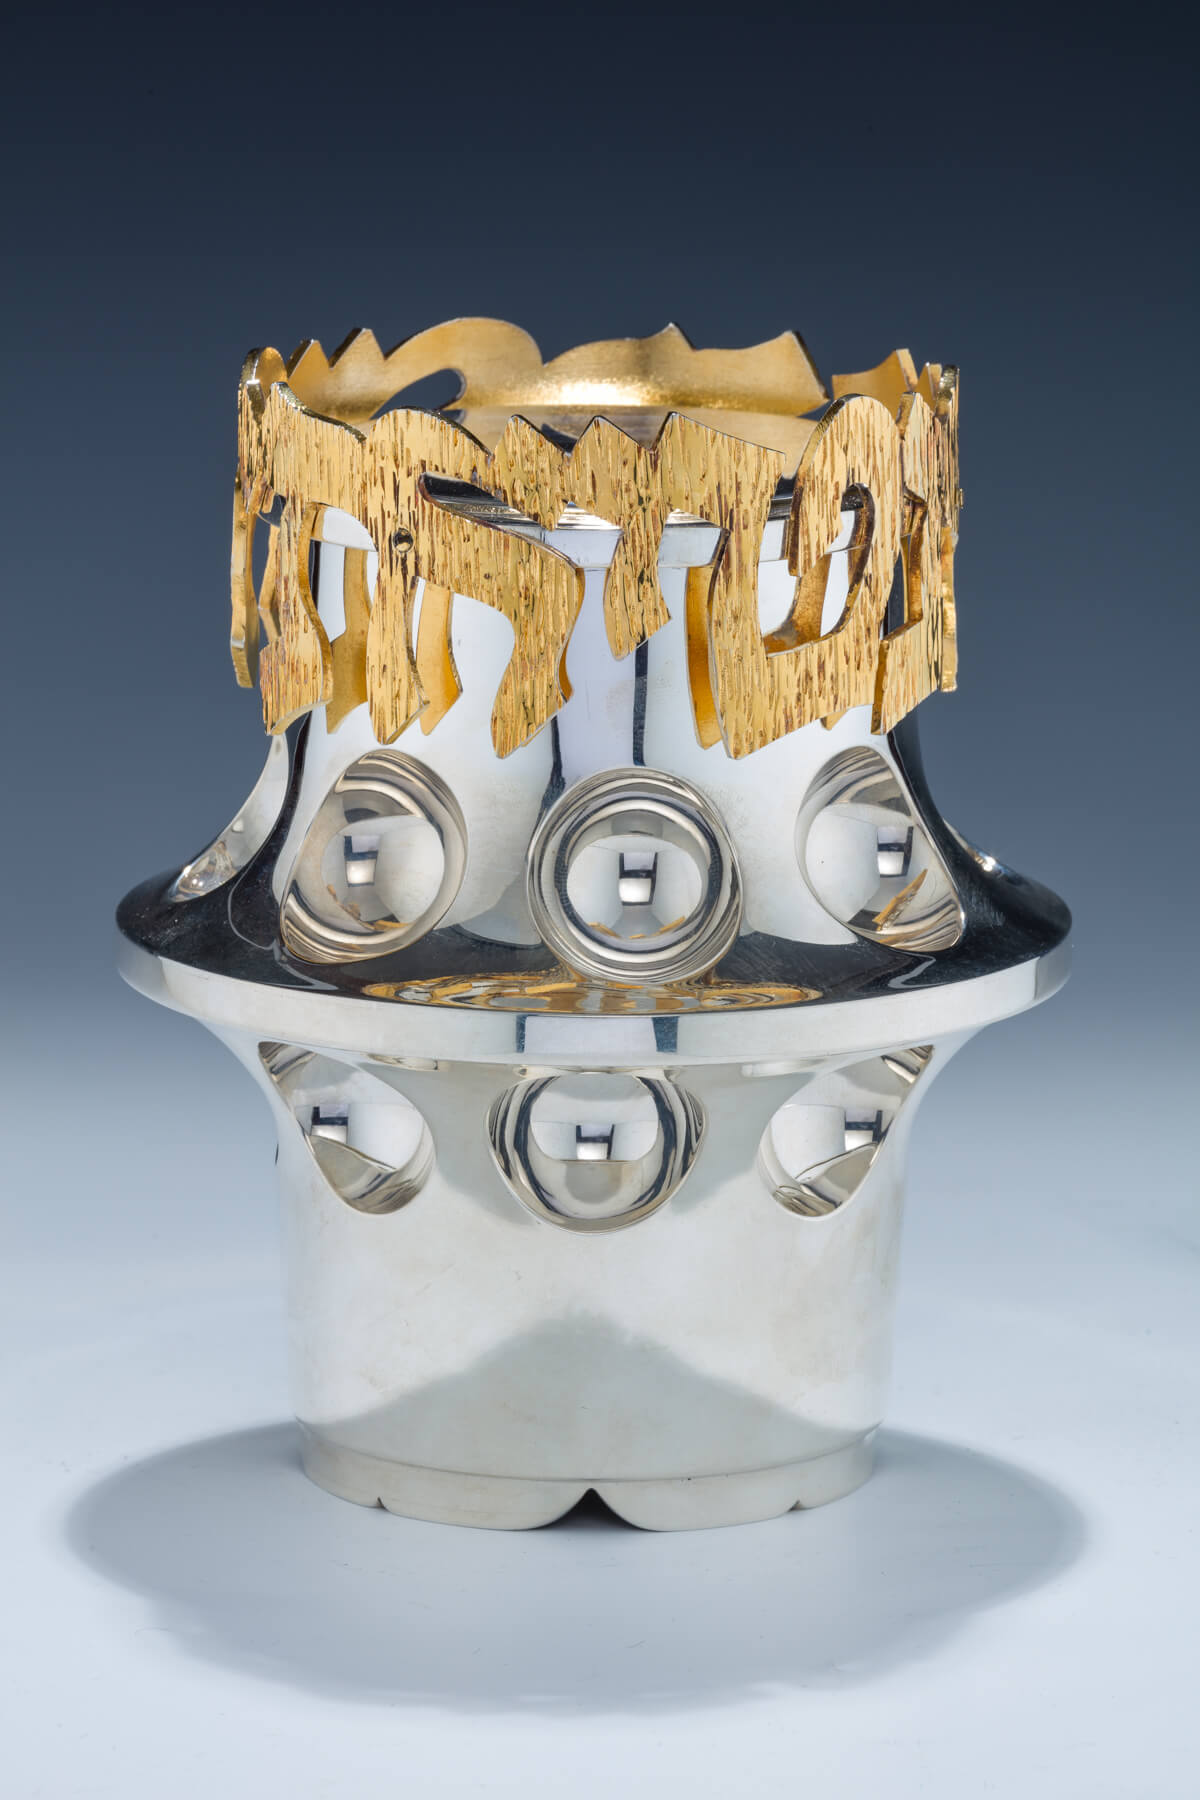 154. A Large Sterling Silver Etrog Container by Carmel Shabi